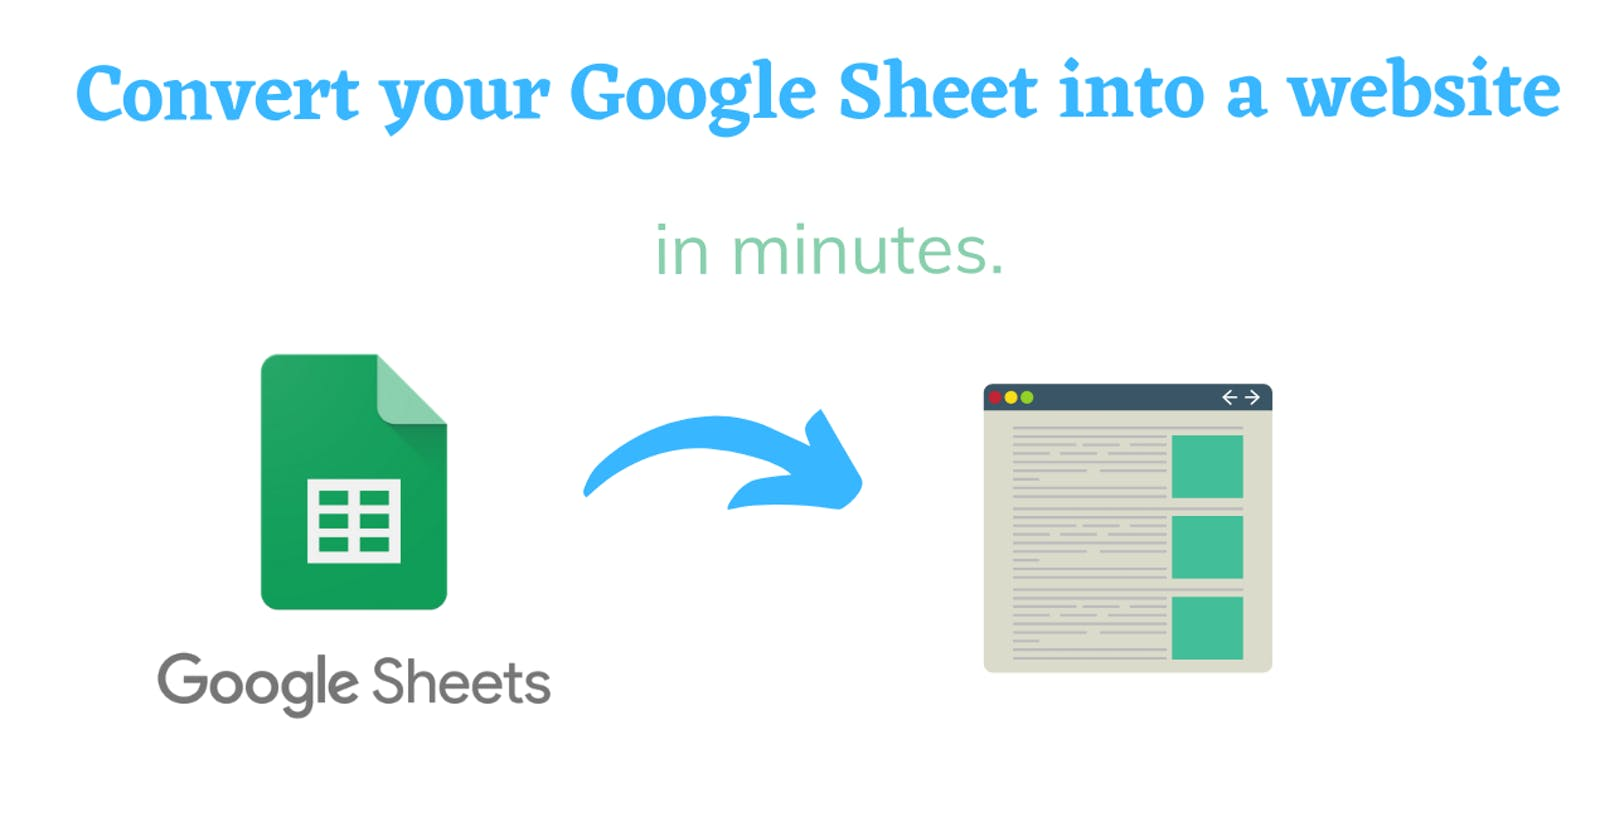 Creating a dynamic website from a Twitter list and Google Sheet